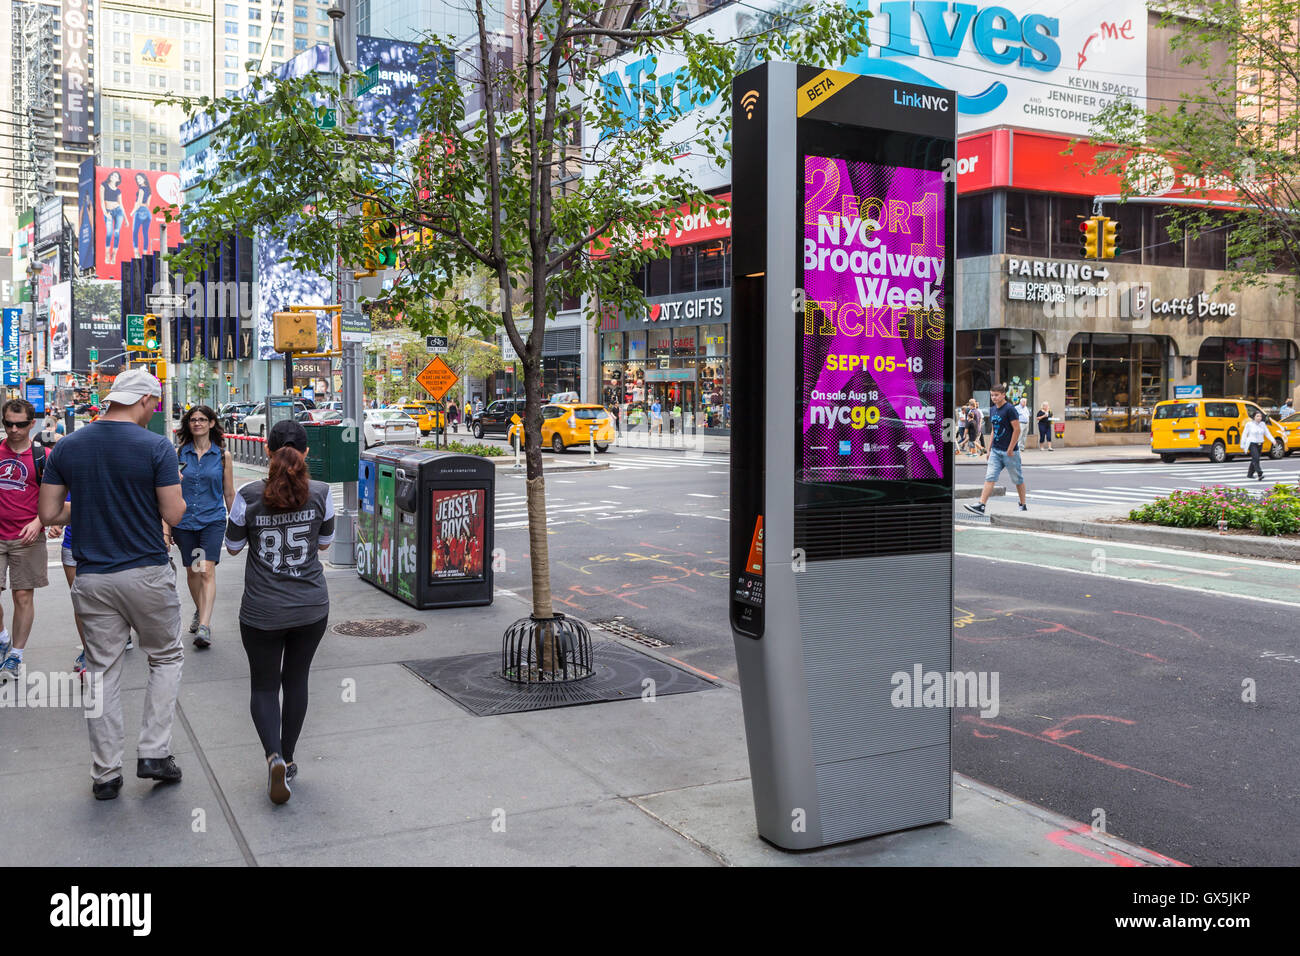 A LinkNYC Wi-Fi kiosk available for free public use on a mid-town street in New York City. - Stock Image